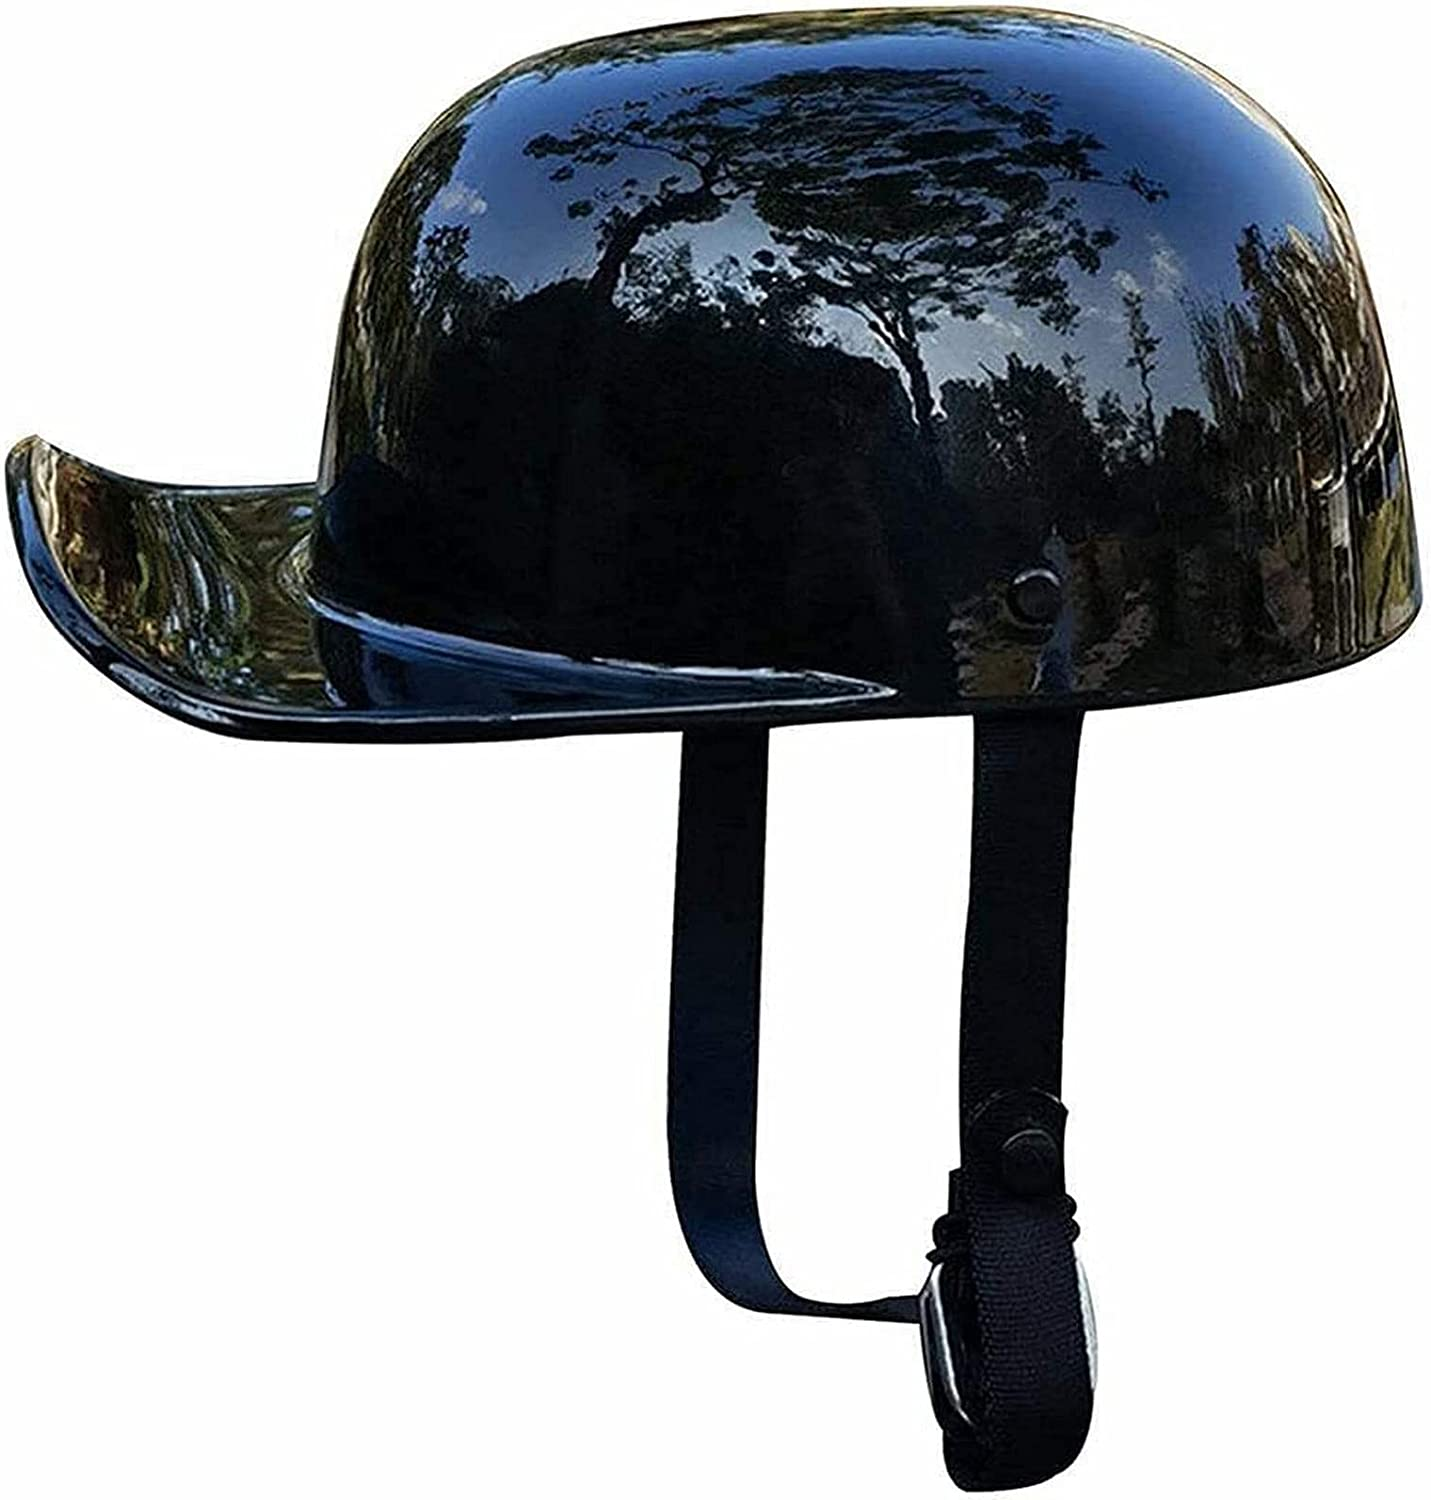 Motorcycle Lowest price challenge Half Helmet Skull Cap for Appro DOT and Women Men ECE New product! New type